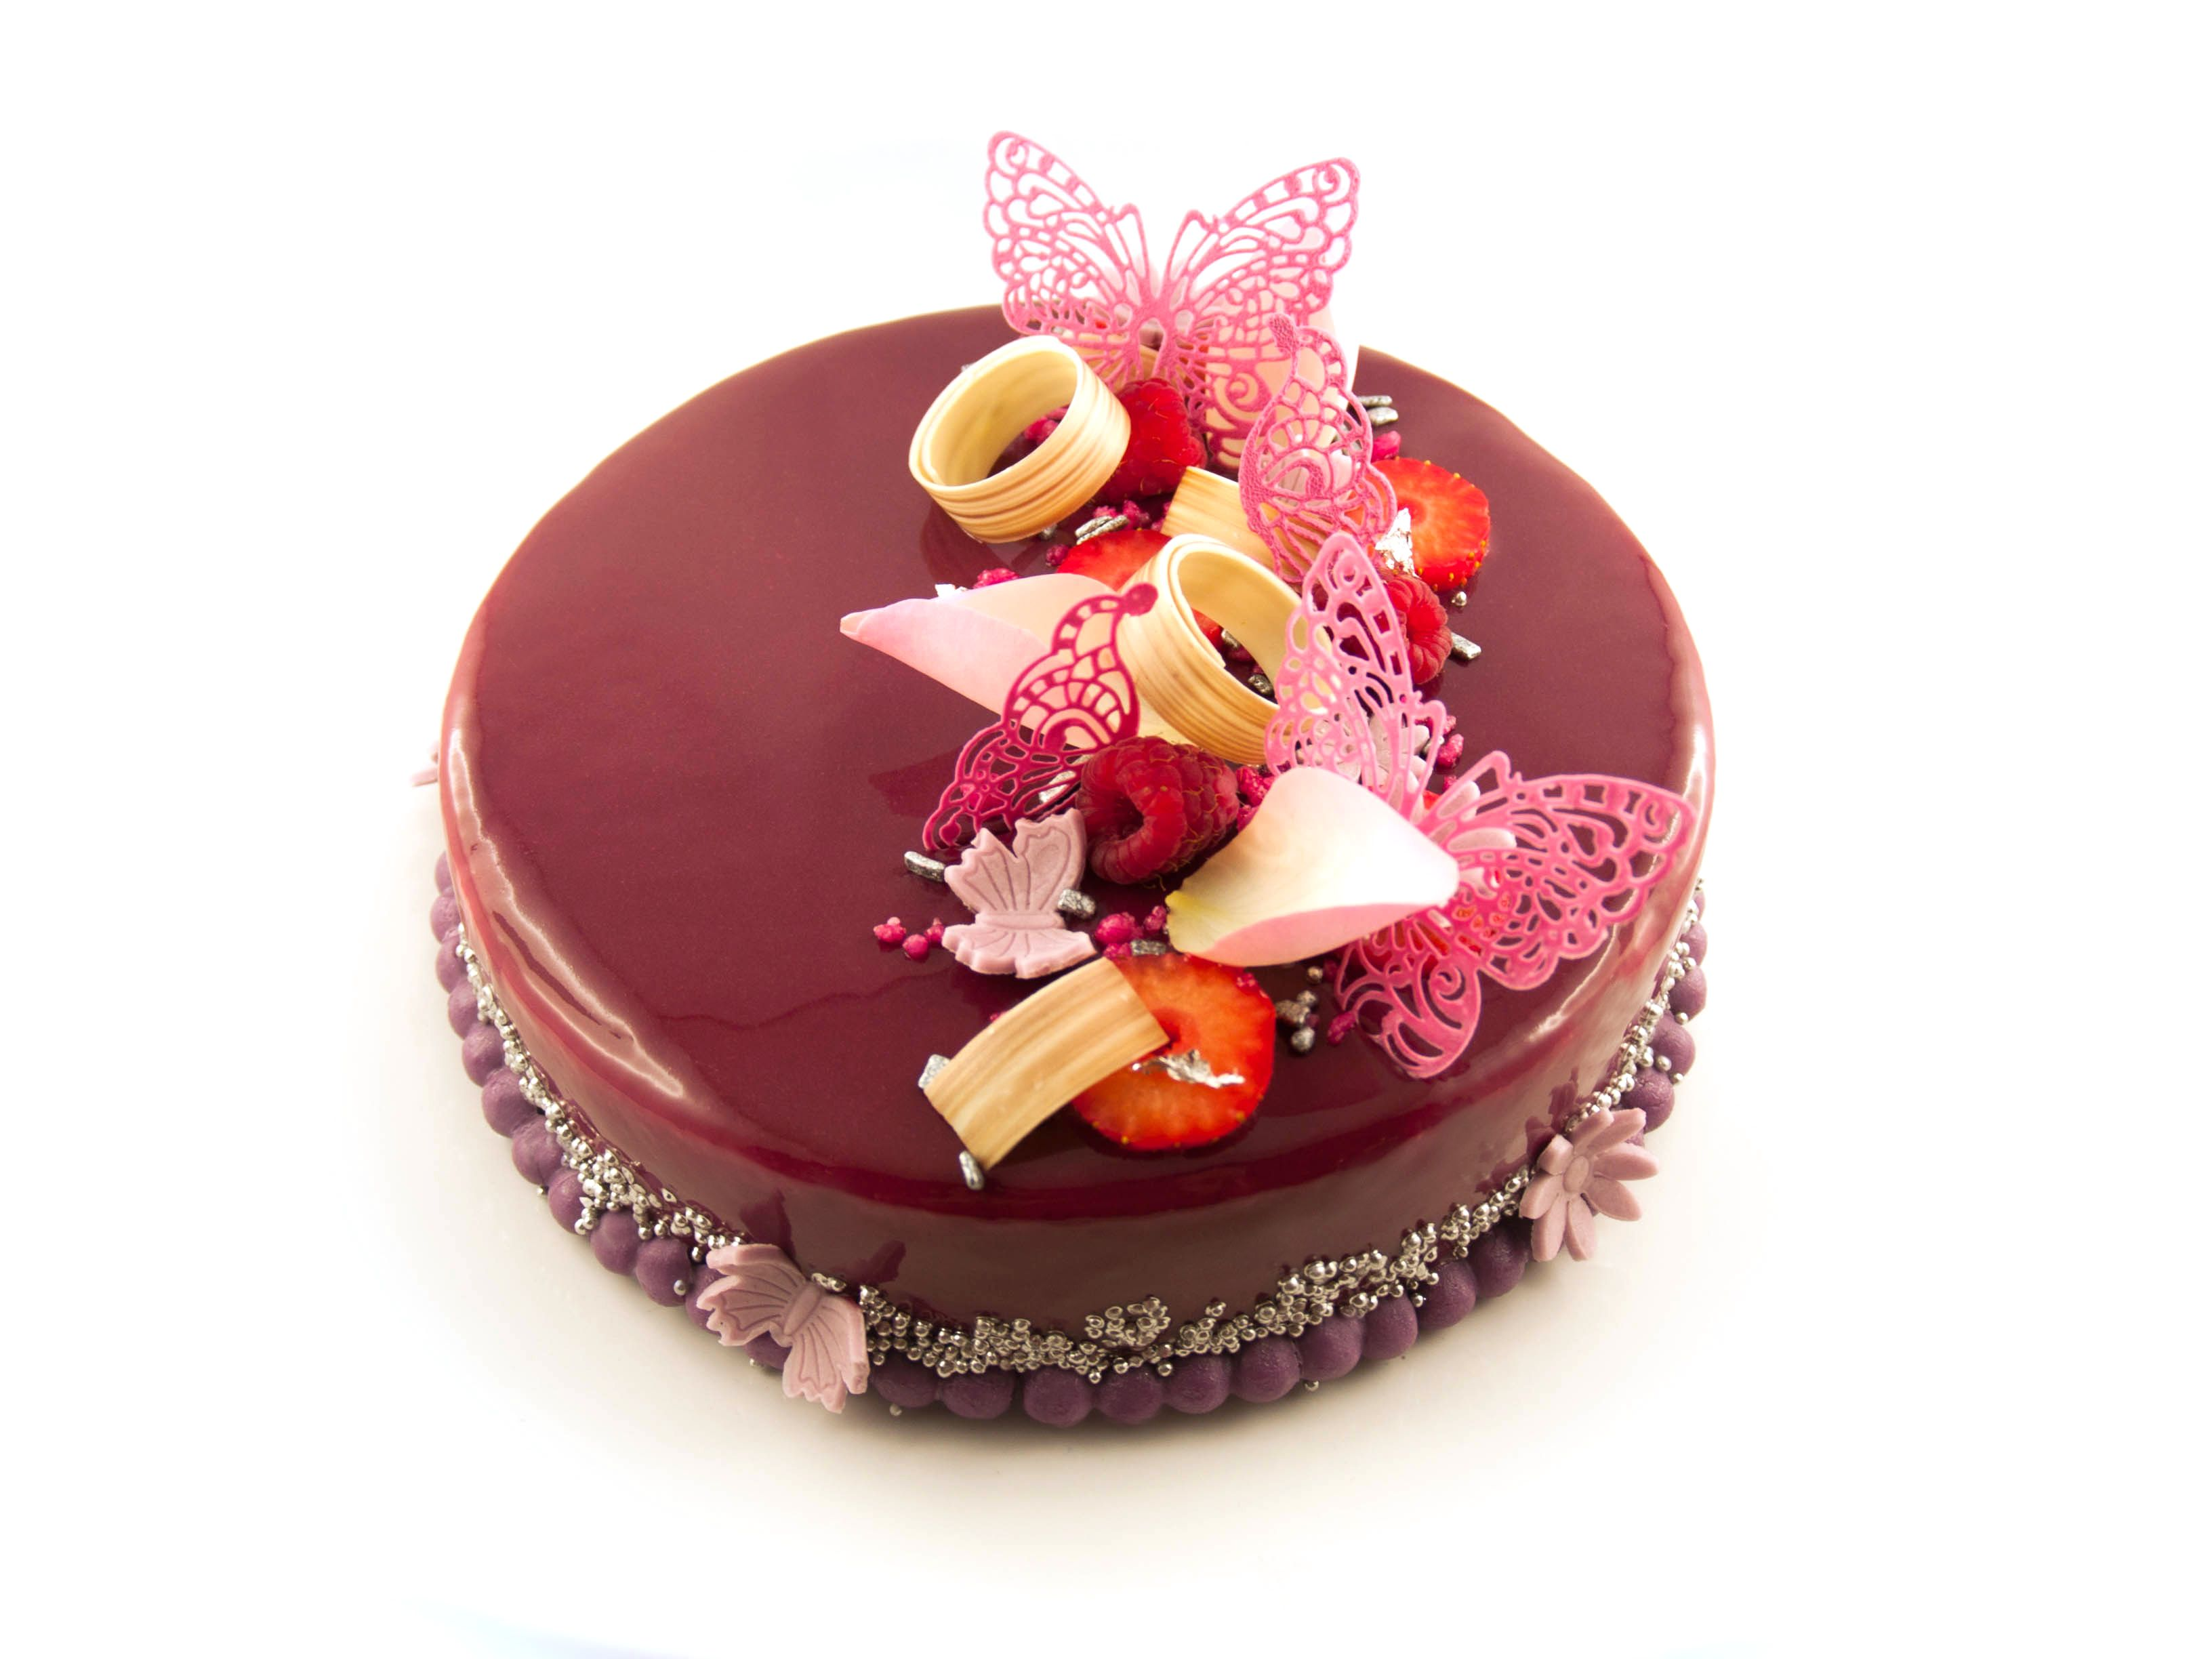 Biscuit framboise confit fraises framboises biscuit macaron cr meux fruits rouge mousse - Decoration gateau glacage ...